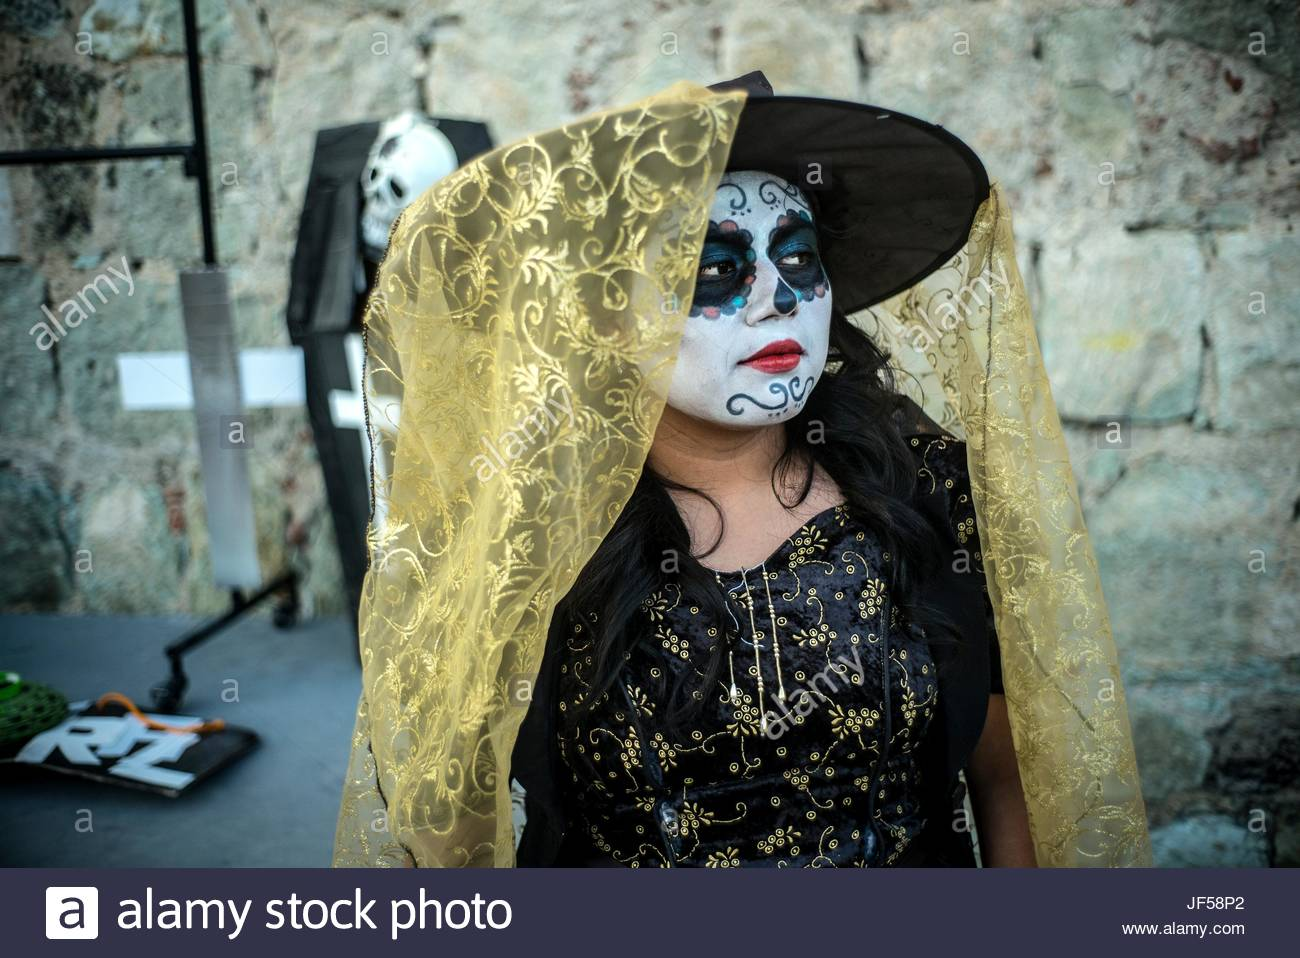 A participant dressed as La Catrina during the Day of the Dead celebrations. - Stock Image